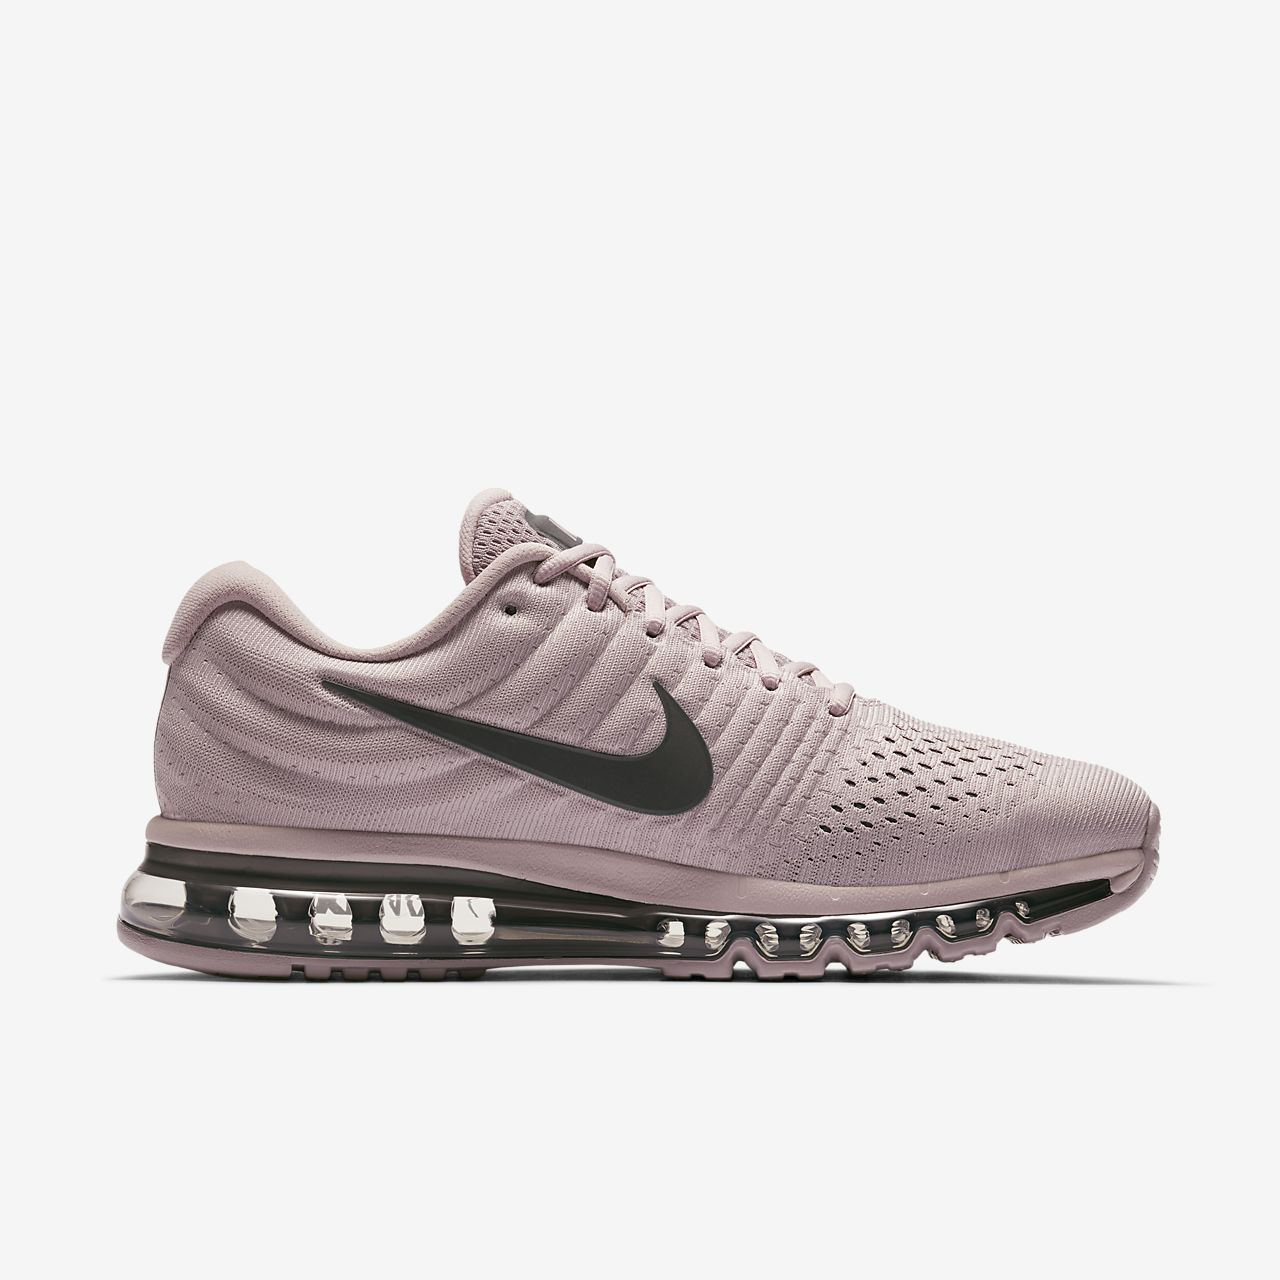 ... Nike Air Max 2017 SE Men's Running Shoe